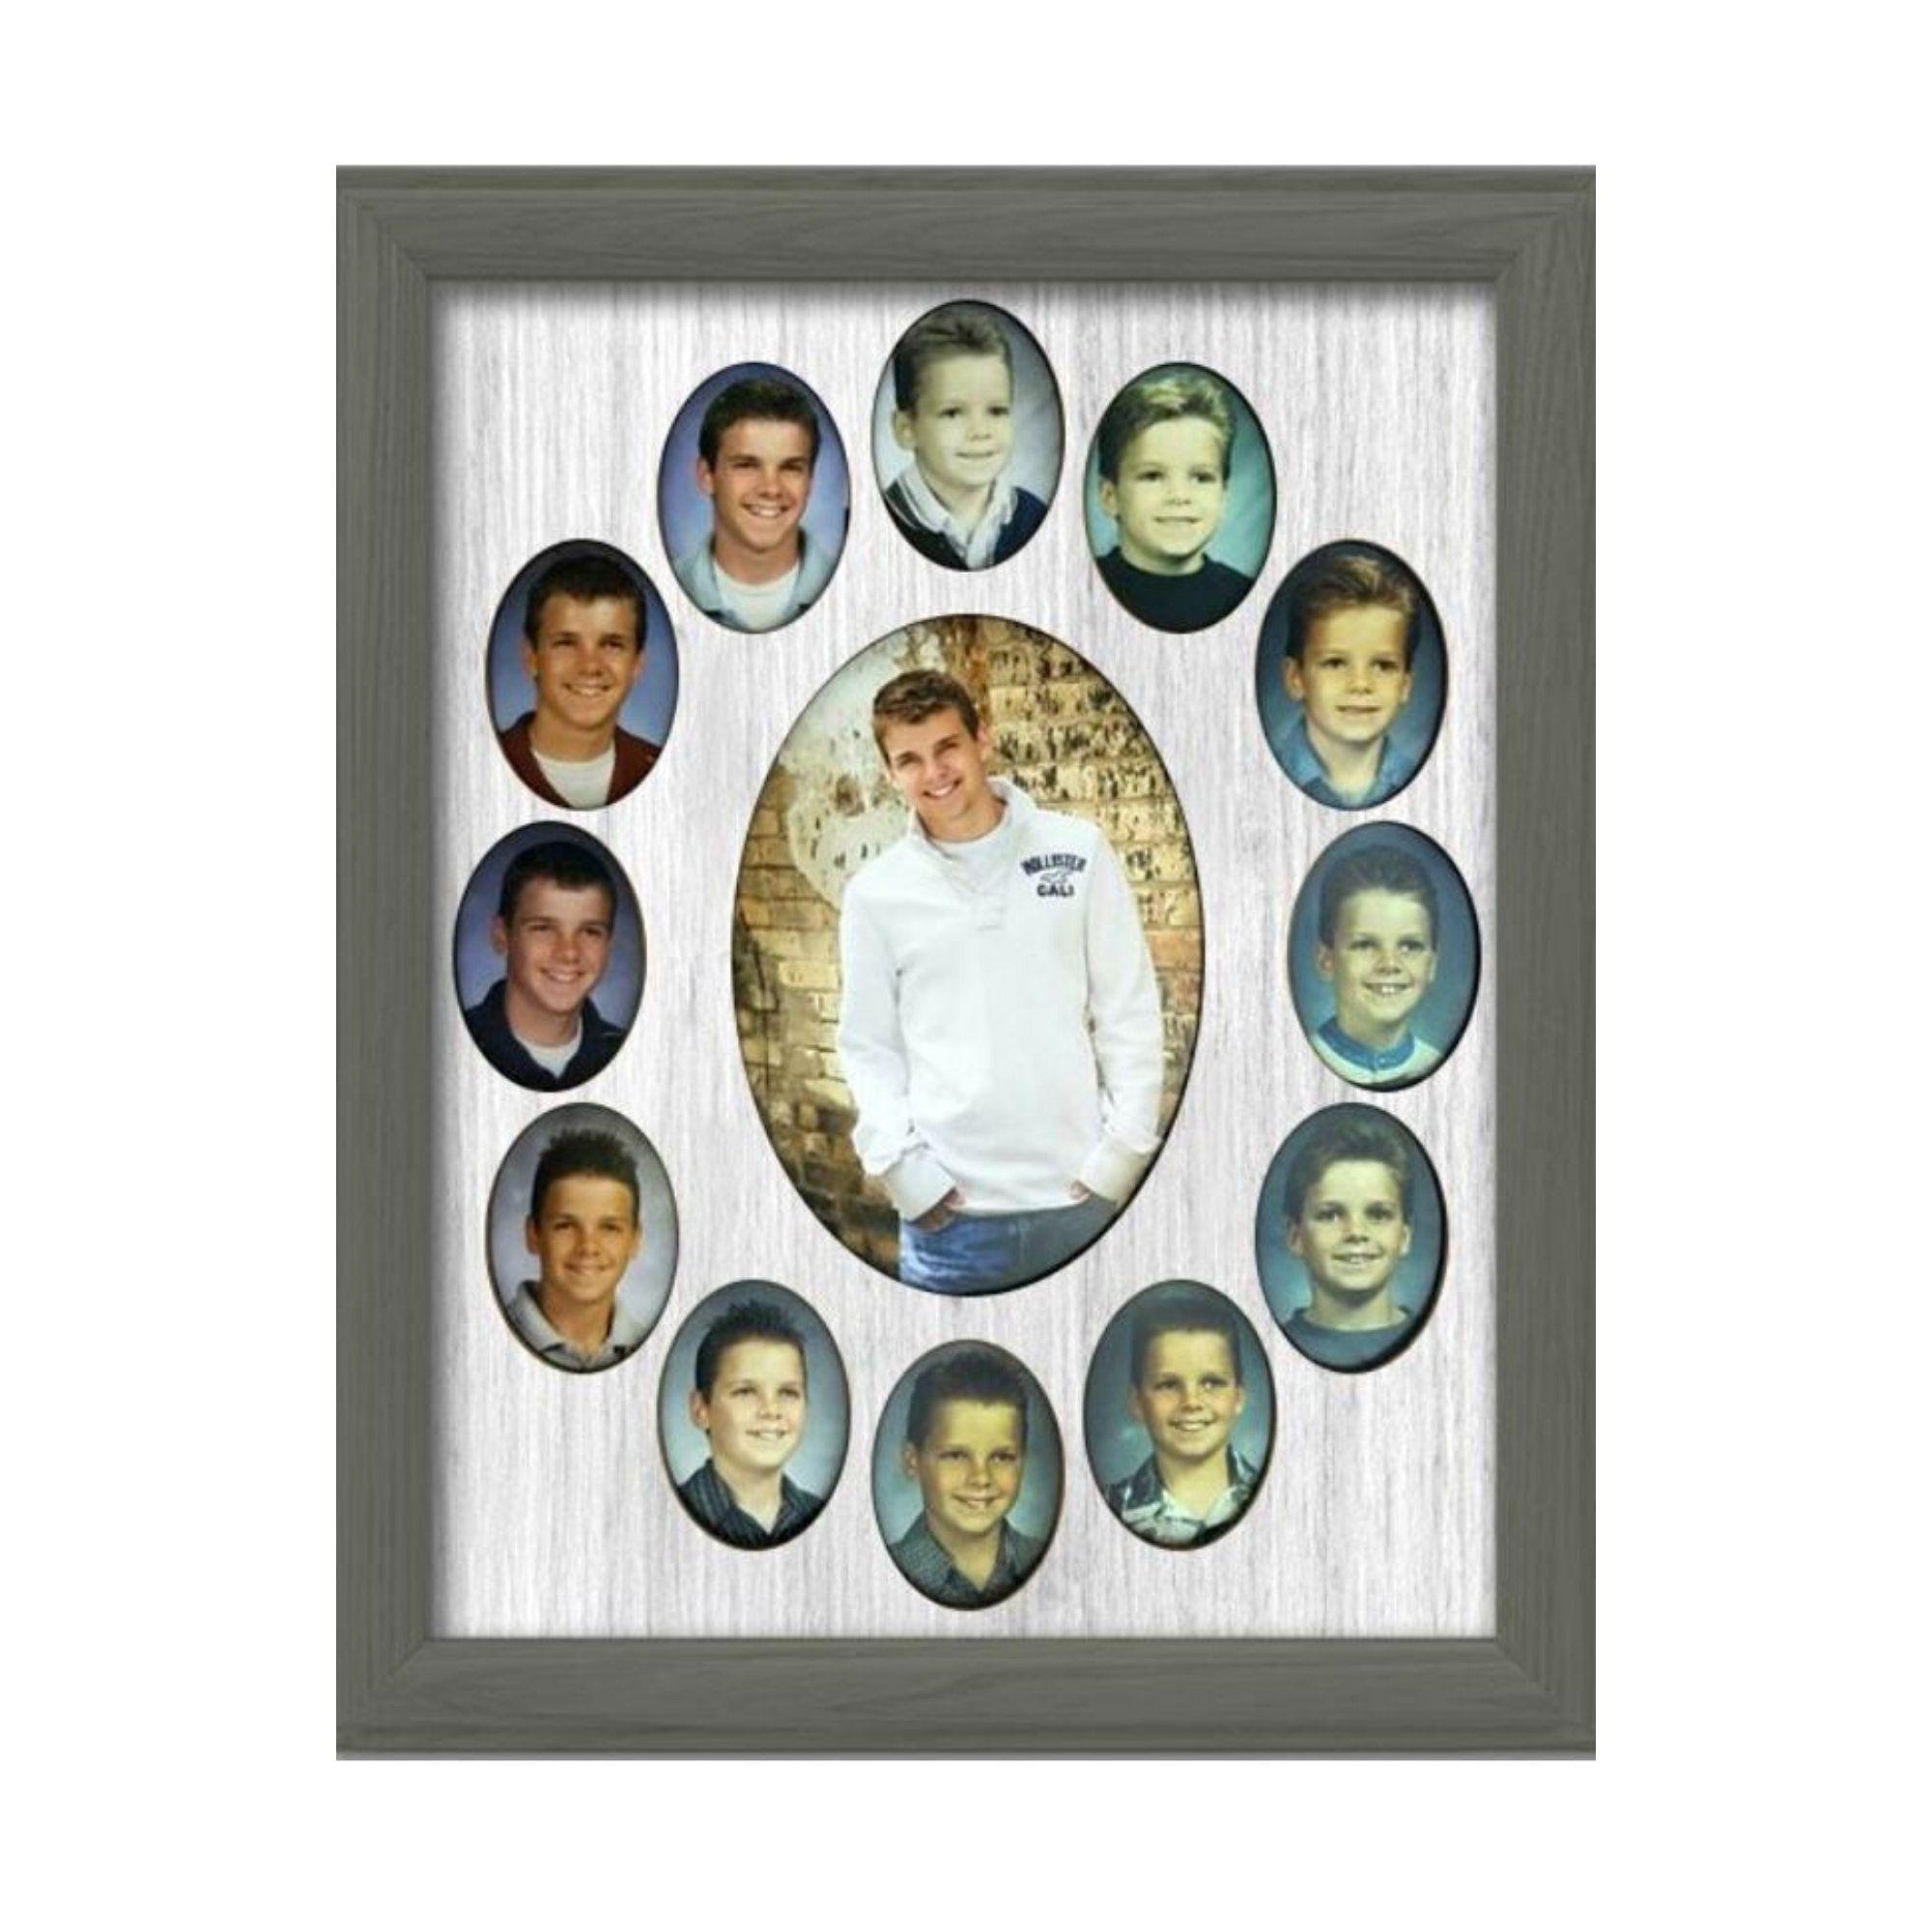 School Years Picture Frame 10 Color Options Shown With Charcoal Gray Frame Oval Graduation Collage K 12 11x14 In 2020 School Years Picture Frame Picture Frames Frame